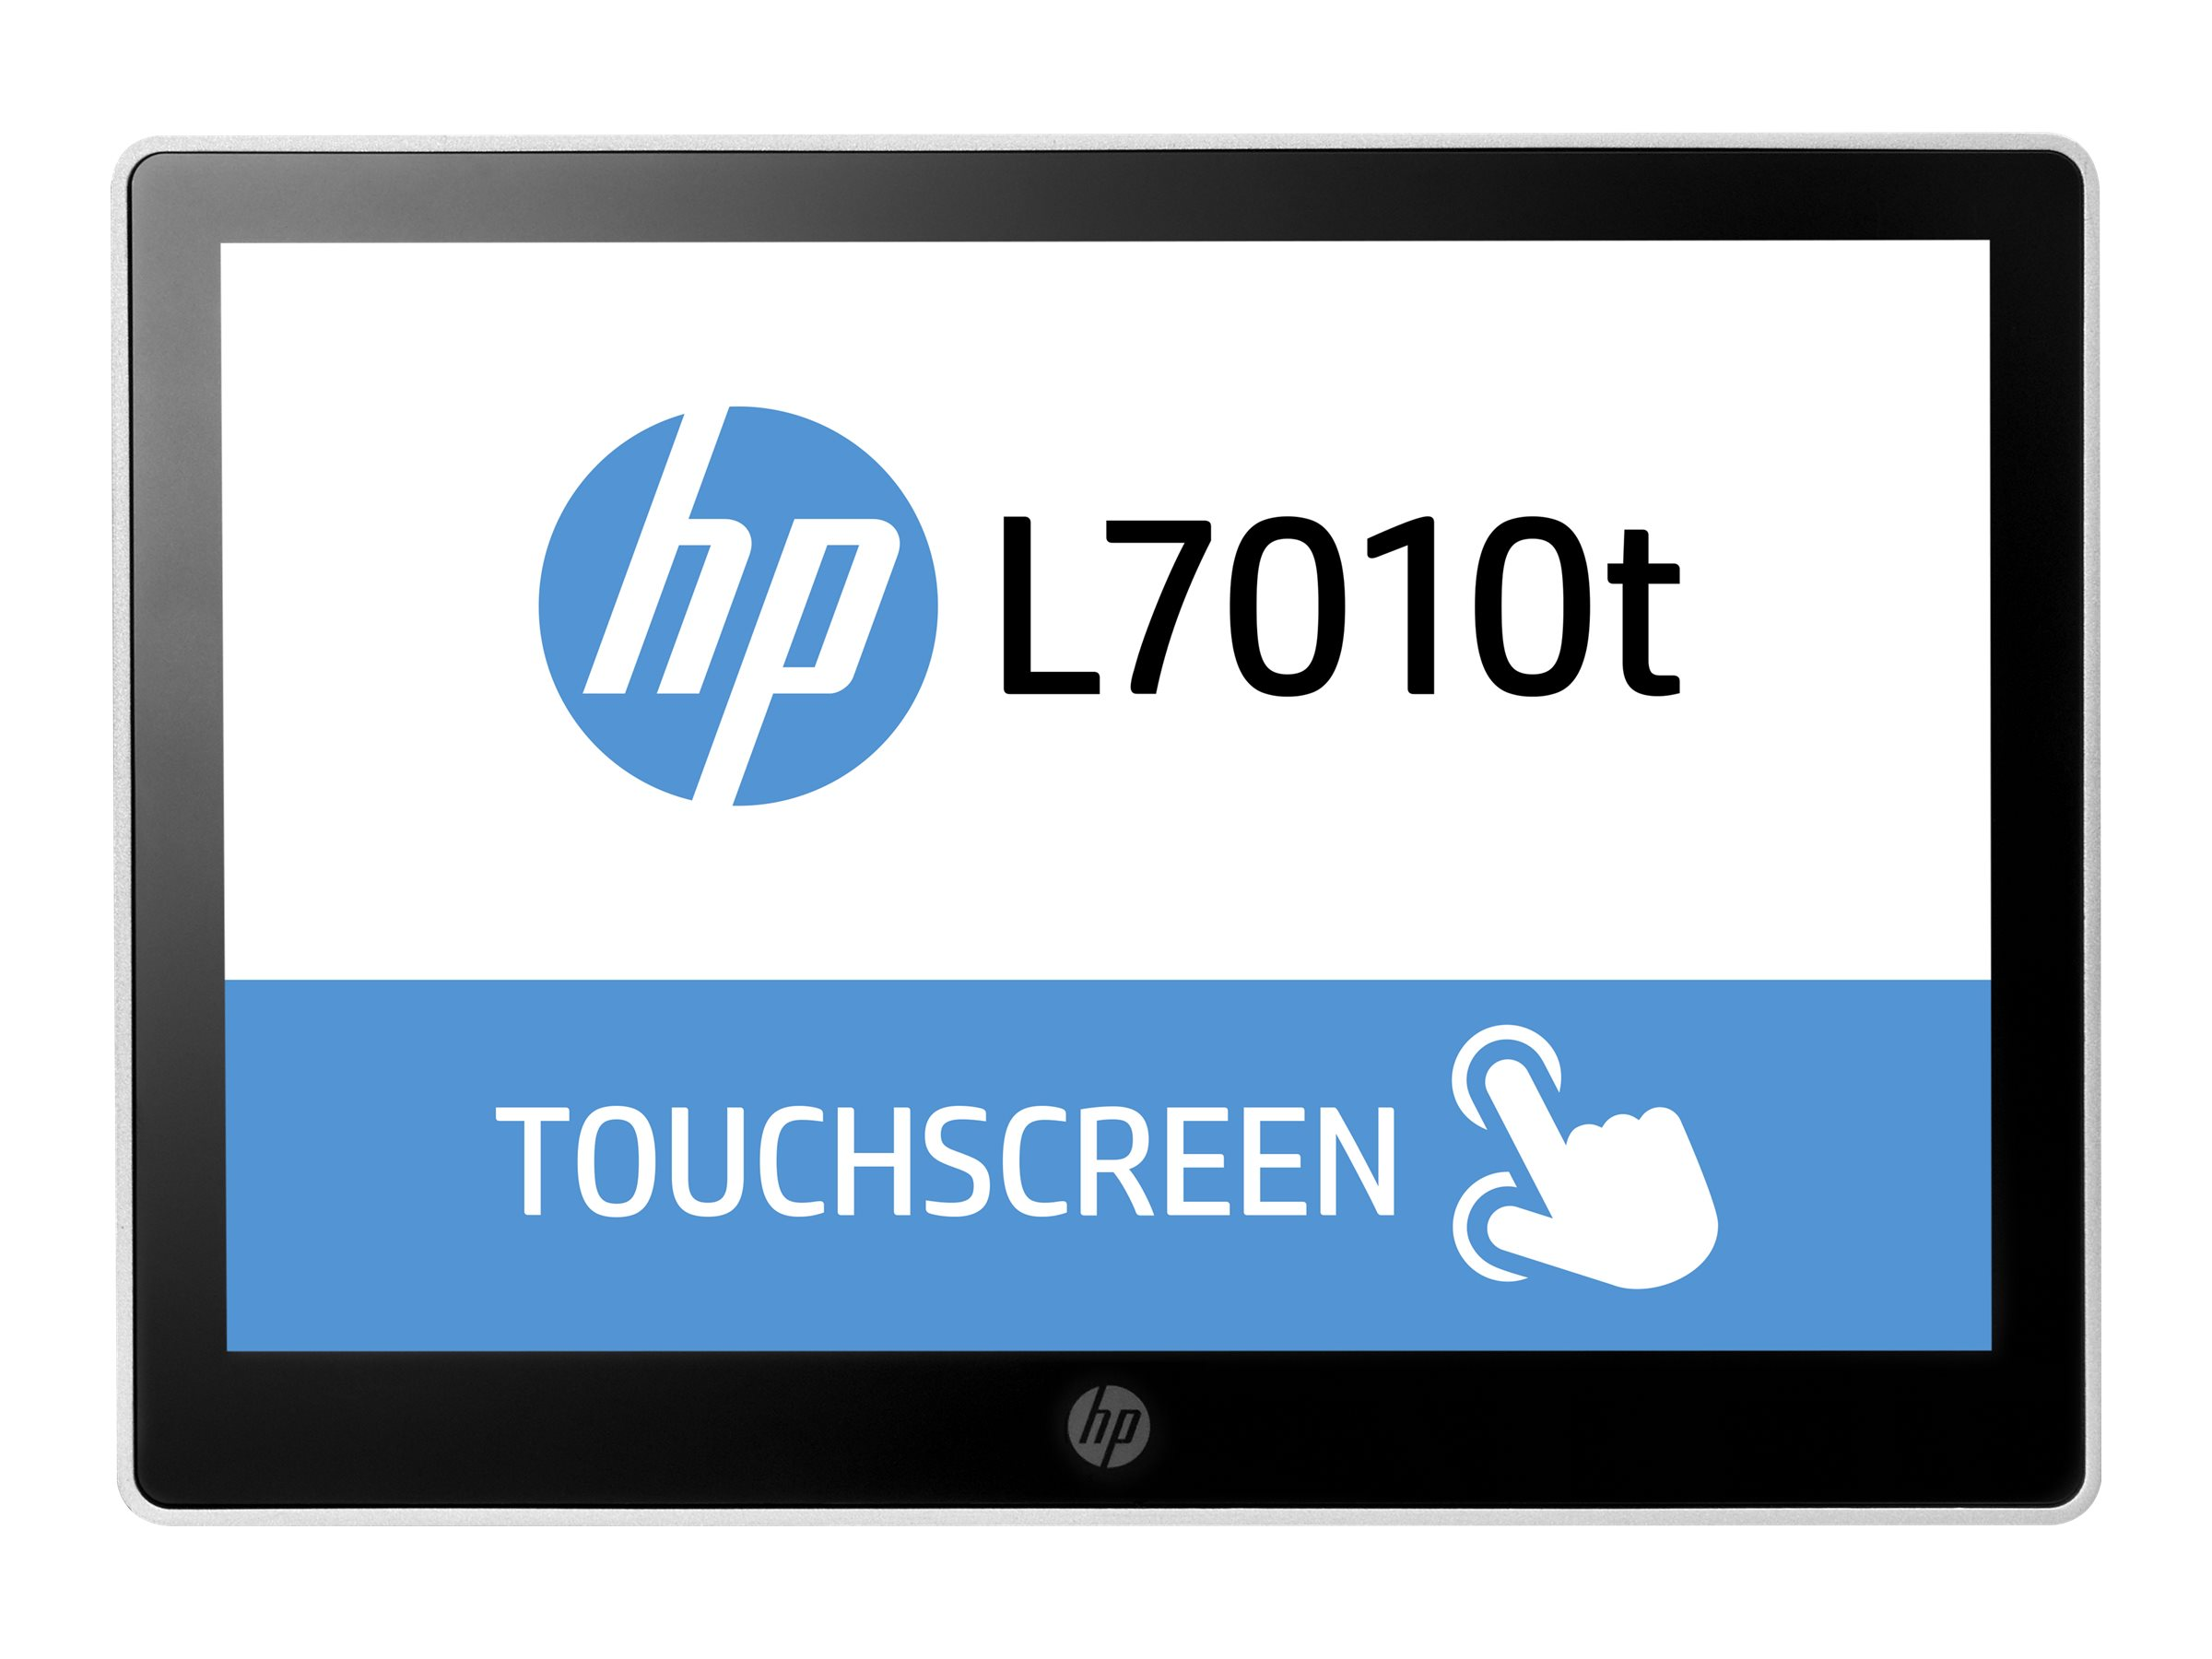 Hp l7010t retail touch monitor led monitor 25 7 cm 10 1 touchscreen 1280 x 800 ads ips 5903973 t6n30aa abb